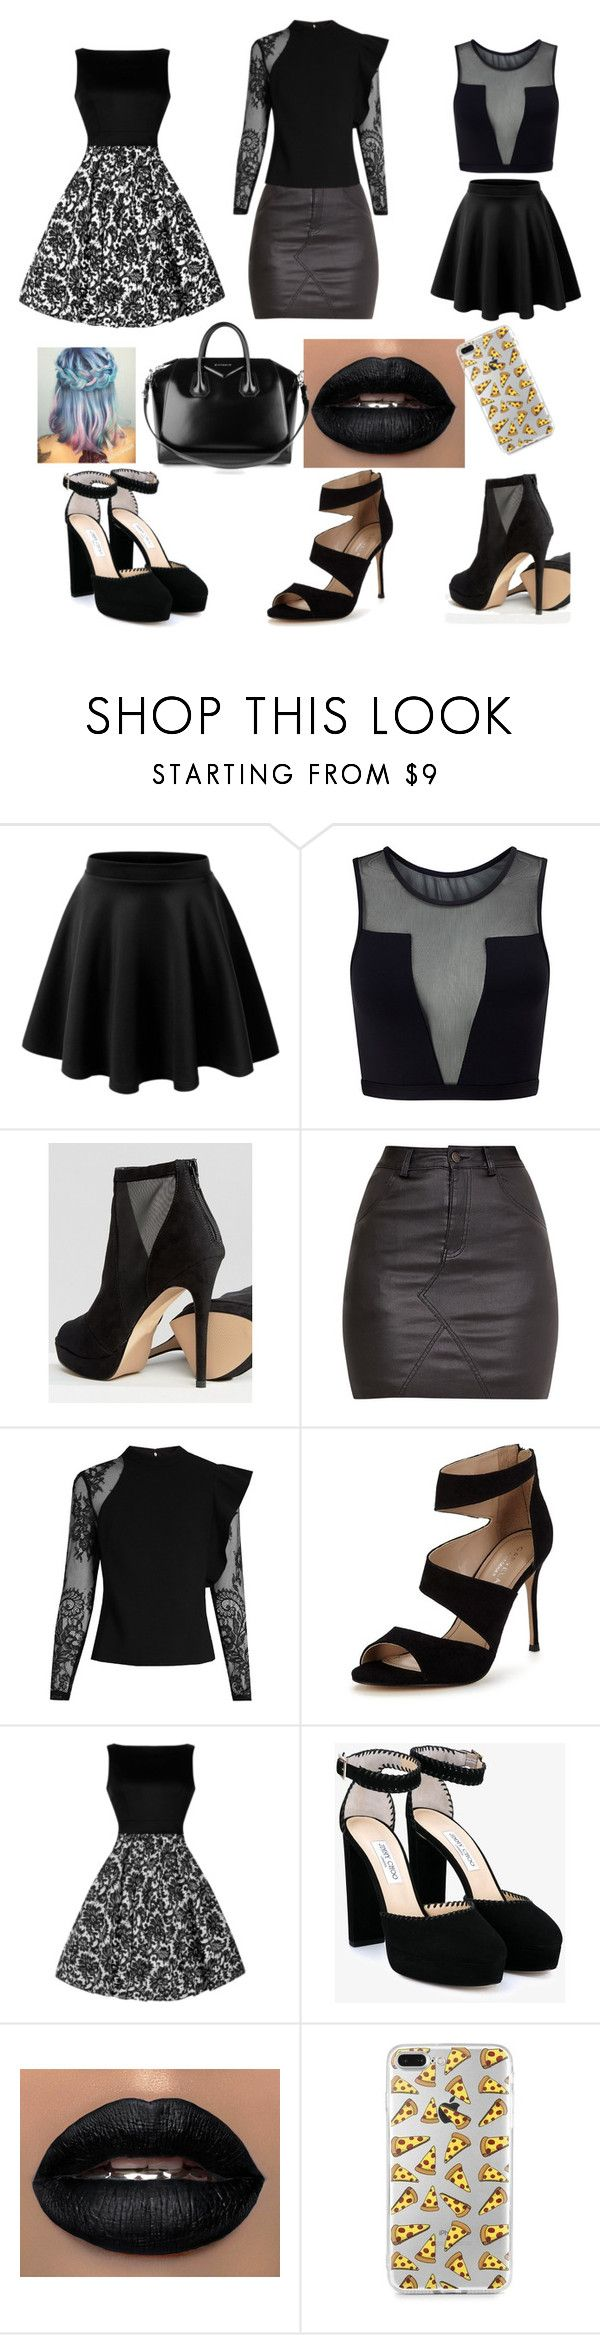 """""""work look"""" by yurikoambrose ❤ liked on Polyvore featuring Varley, ALDO, self-portrait, Carvela, Jimmy Choo and Givenchy"""